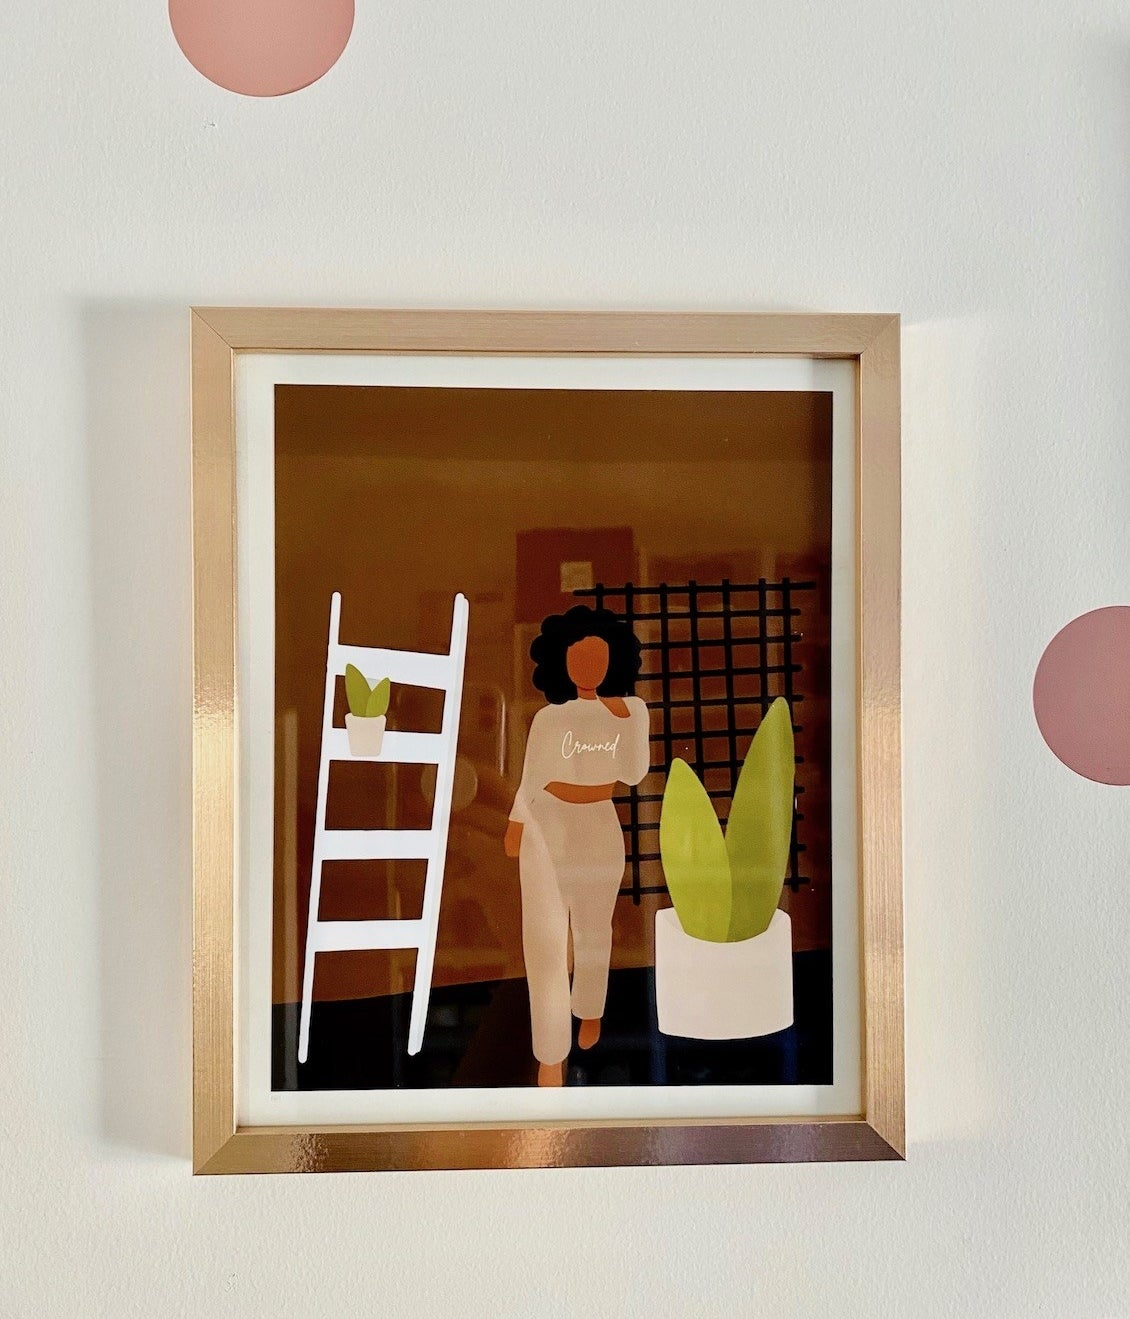 """A framed print of an illustrated Black woman wearing a sweatshirt that says """"crowned"""" while standing next to plants"""